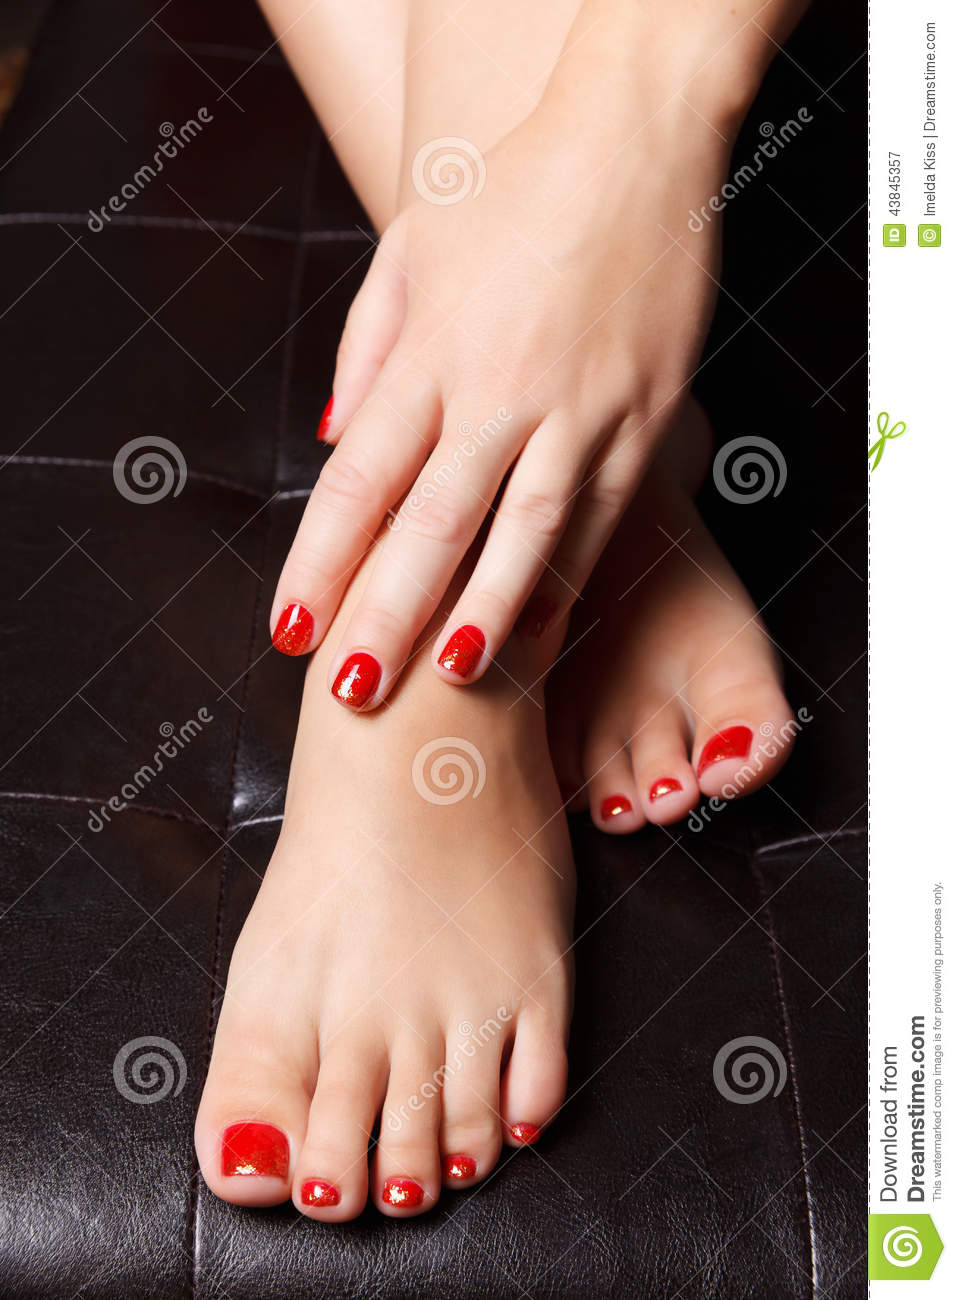 Close-up Portrait Of Painted Nails Stock Image - Image of nail ...